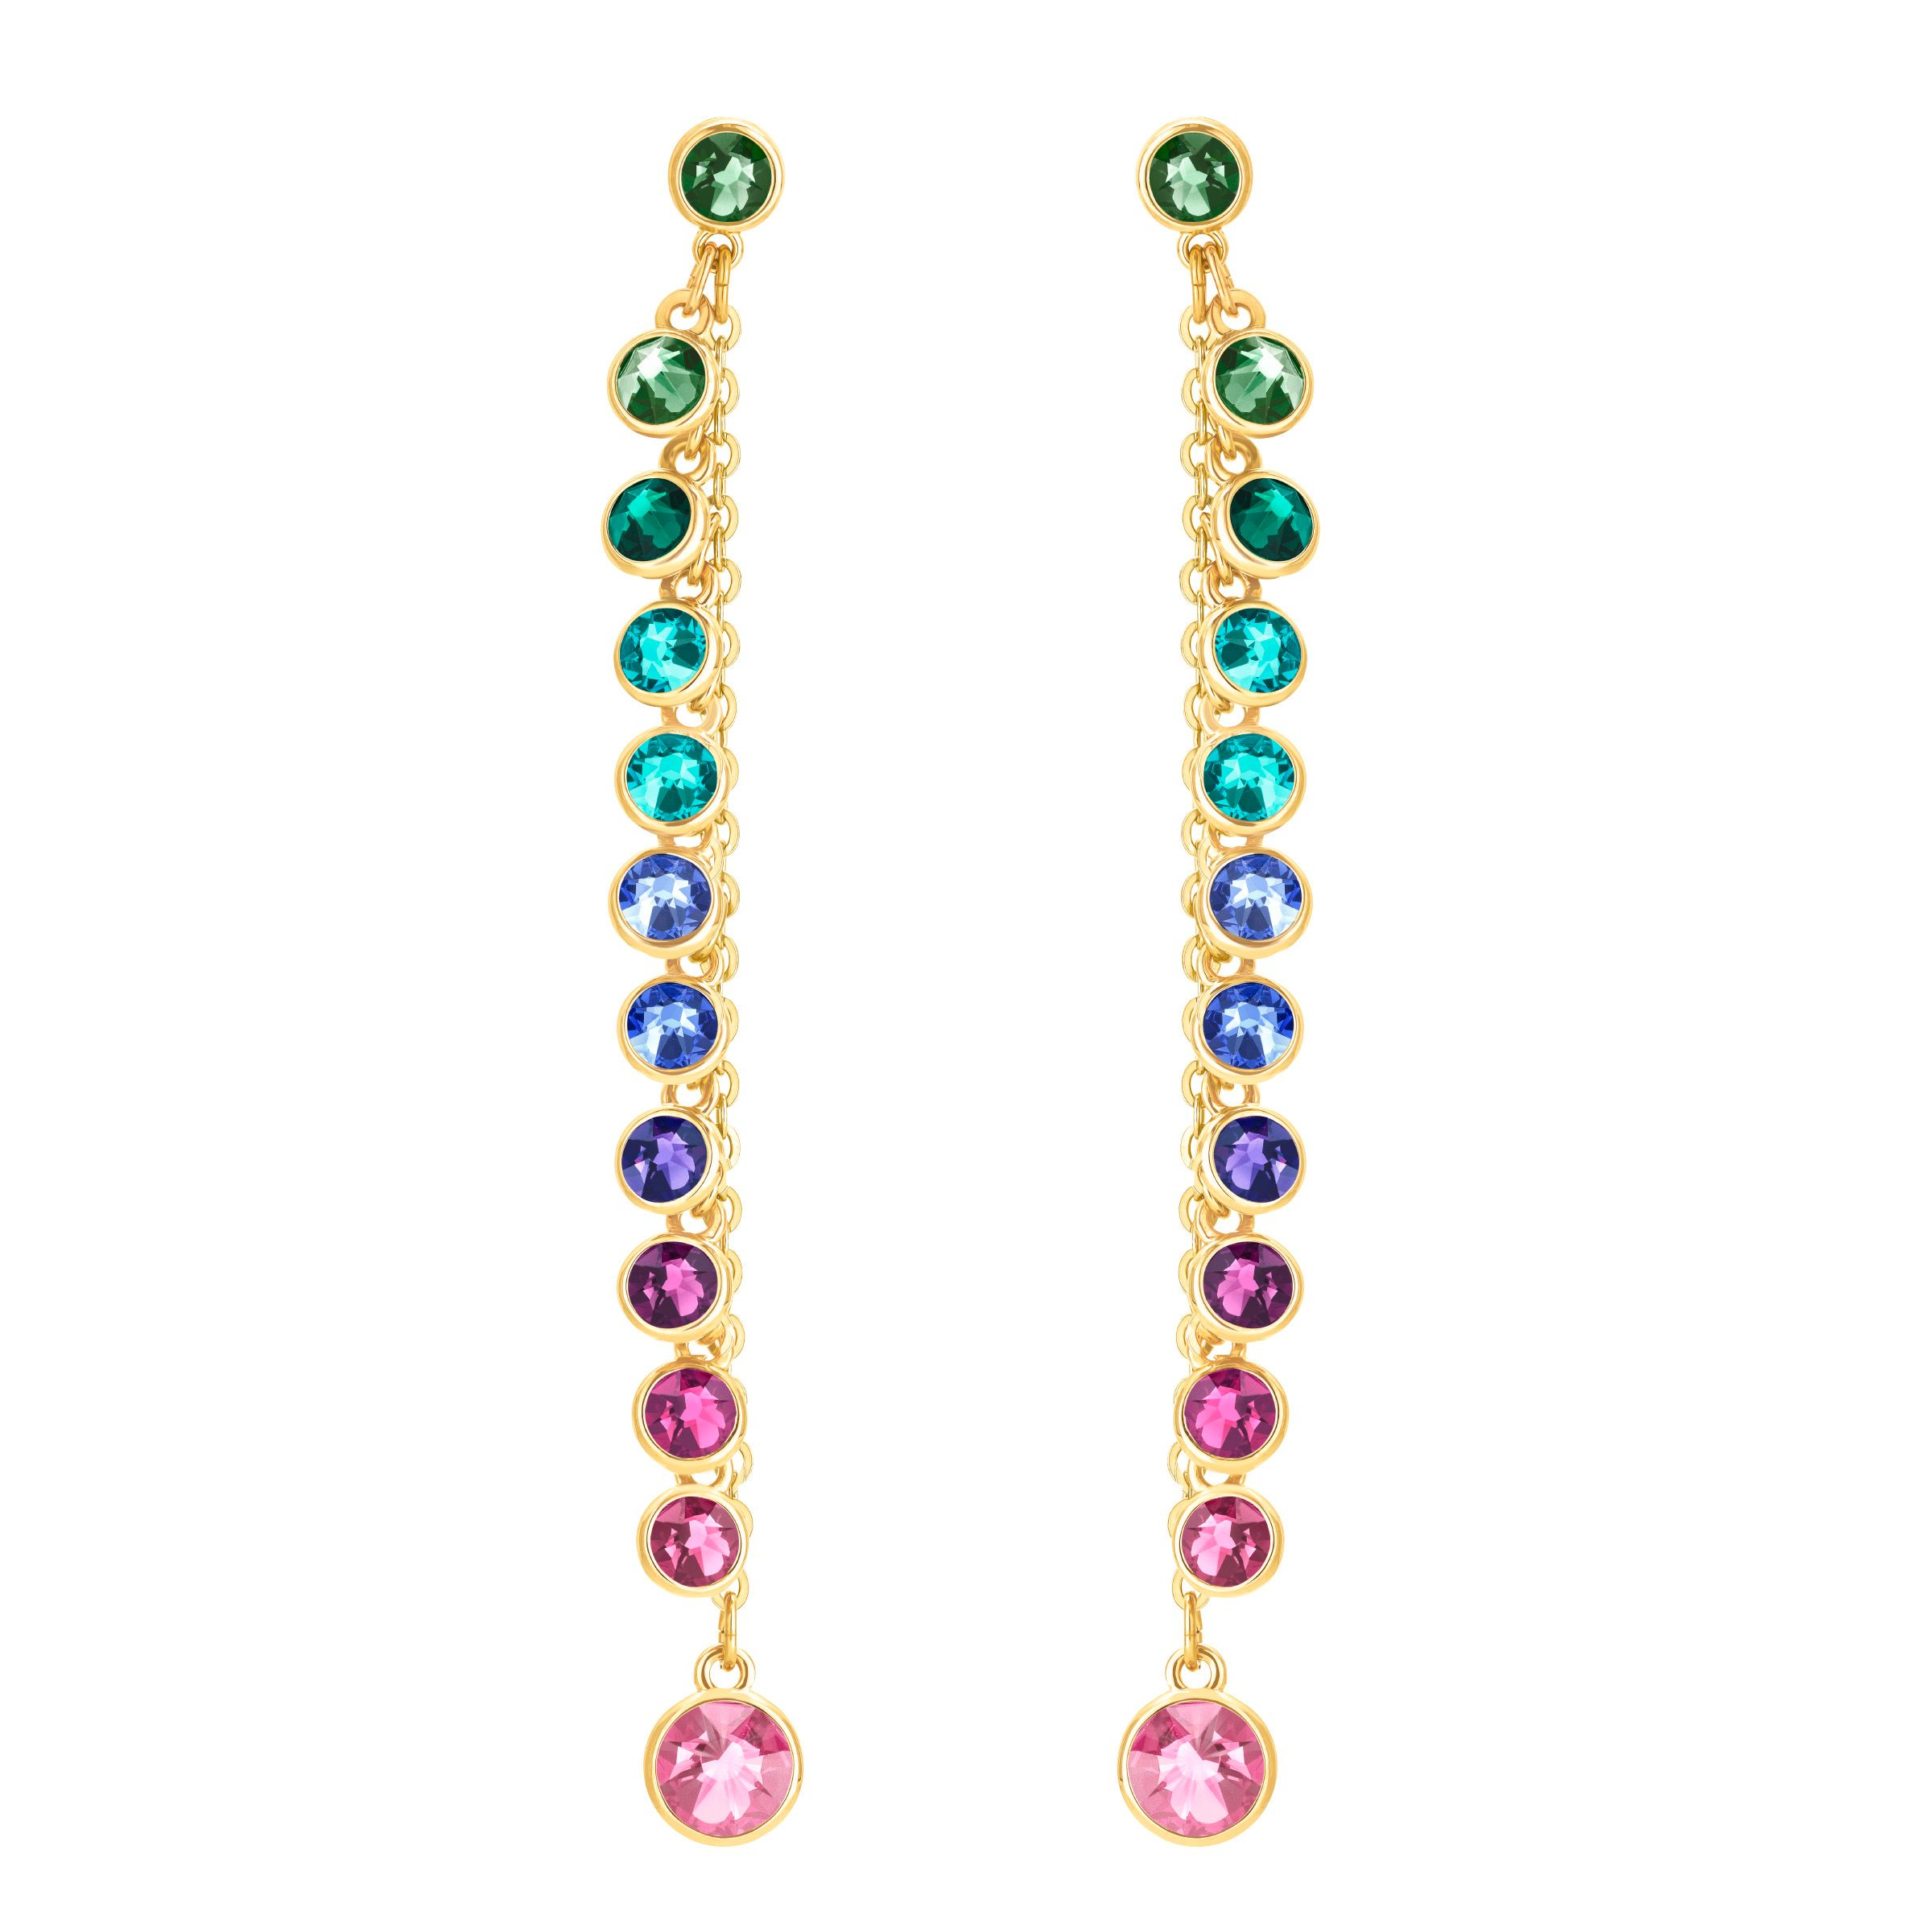 Swarovski Attract Pierced Earrings, Multi-Colored, Gold Pla, Multi-Coloured